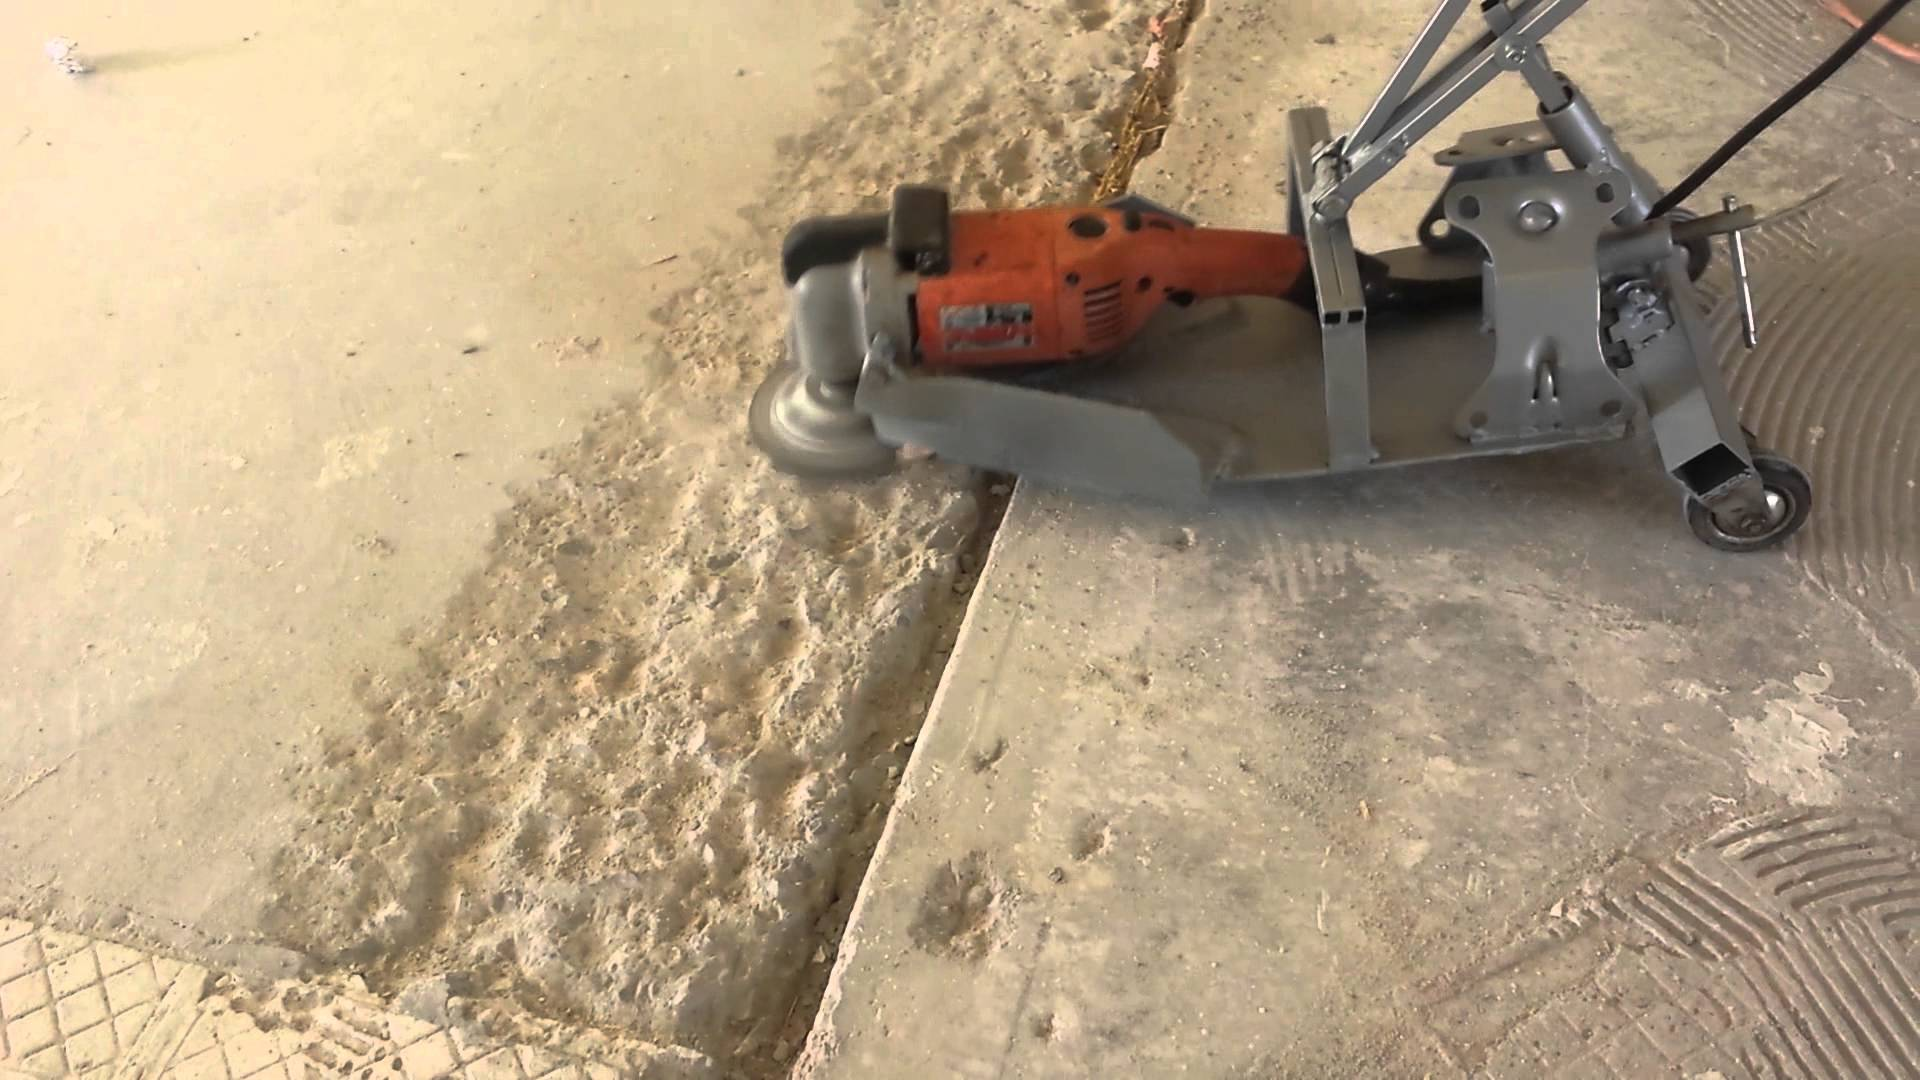 Broward County Concrete Underlayment Solutions-concrete underlayment services, concrete overpayment, polishing, grinding, Stucco installation-2-We do concrete underlayment services, concrete overpayment, polishing, grinding, Stucco installation, EIFS repair, new construction concrete pouring, epoxy floor finishing, concrete repair, commercial concrete contracting work, and more